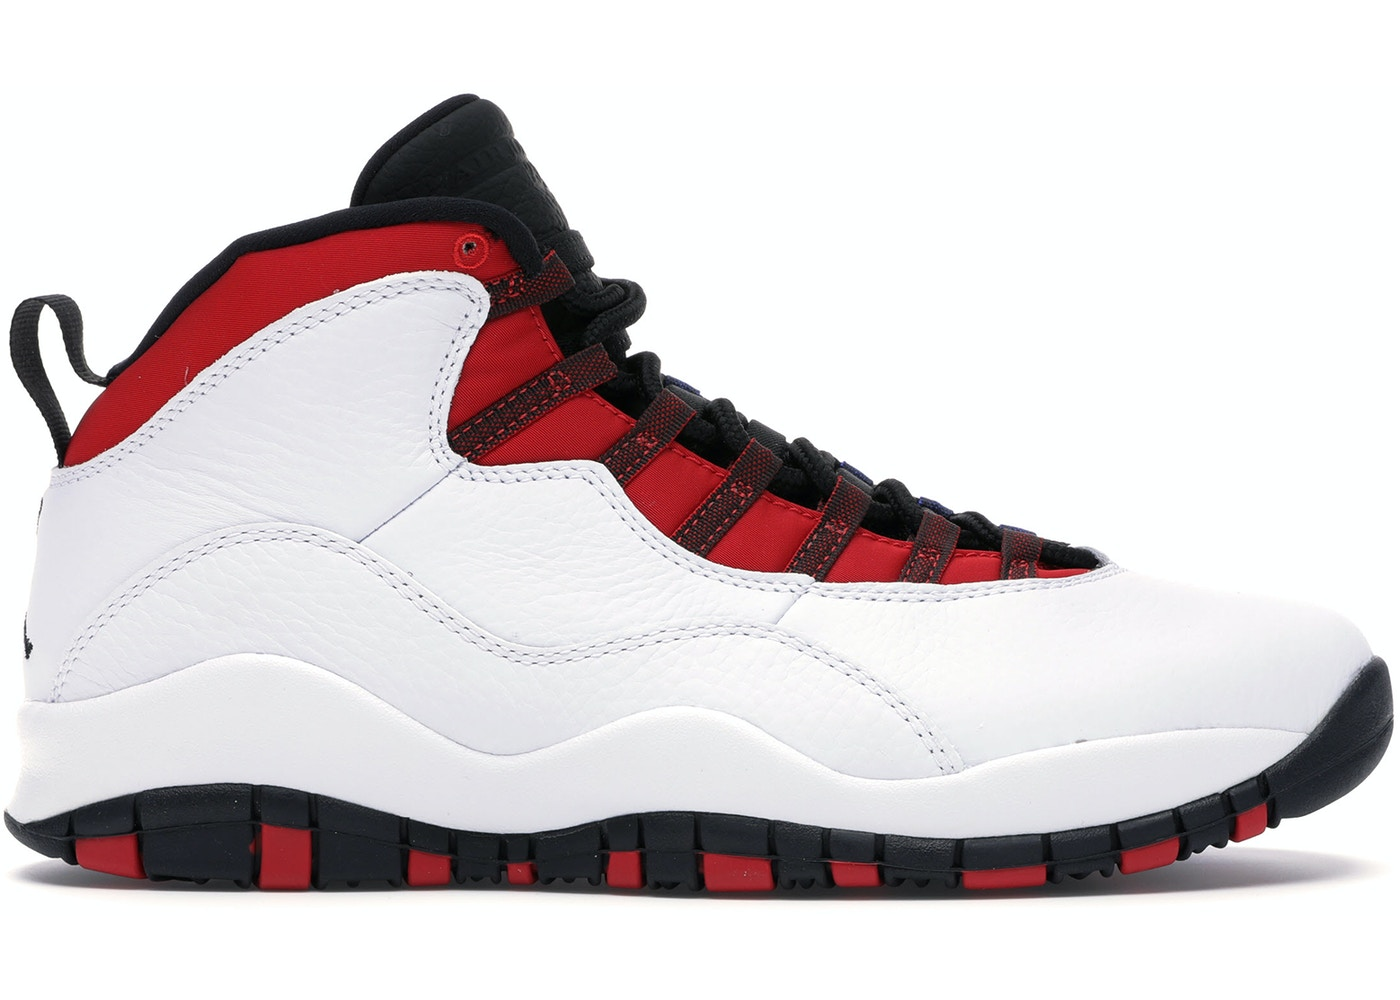 new style 2a748 b0101 Buy Air Jordan 10 Shoes   Deadstock Sneakers